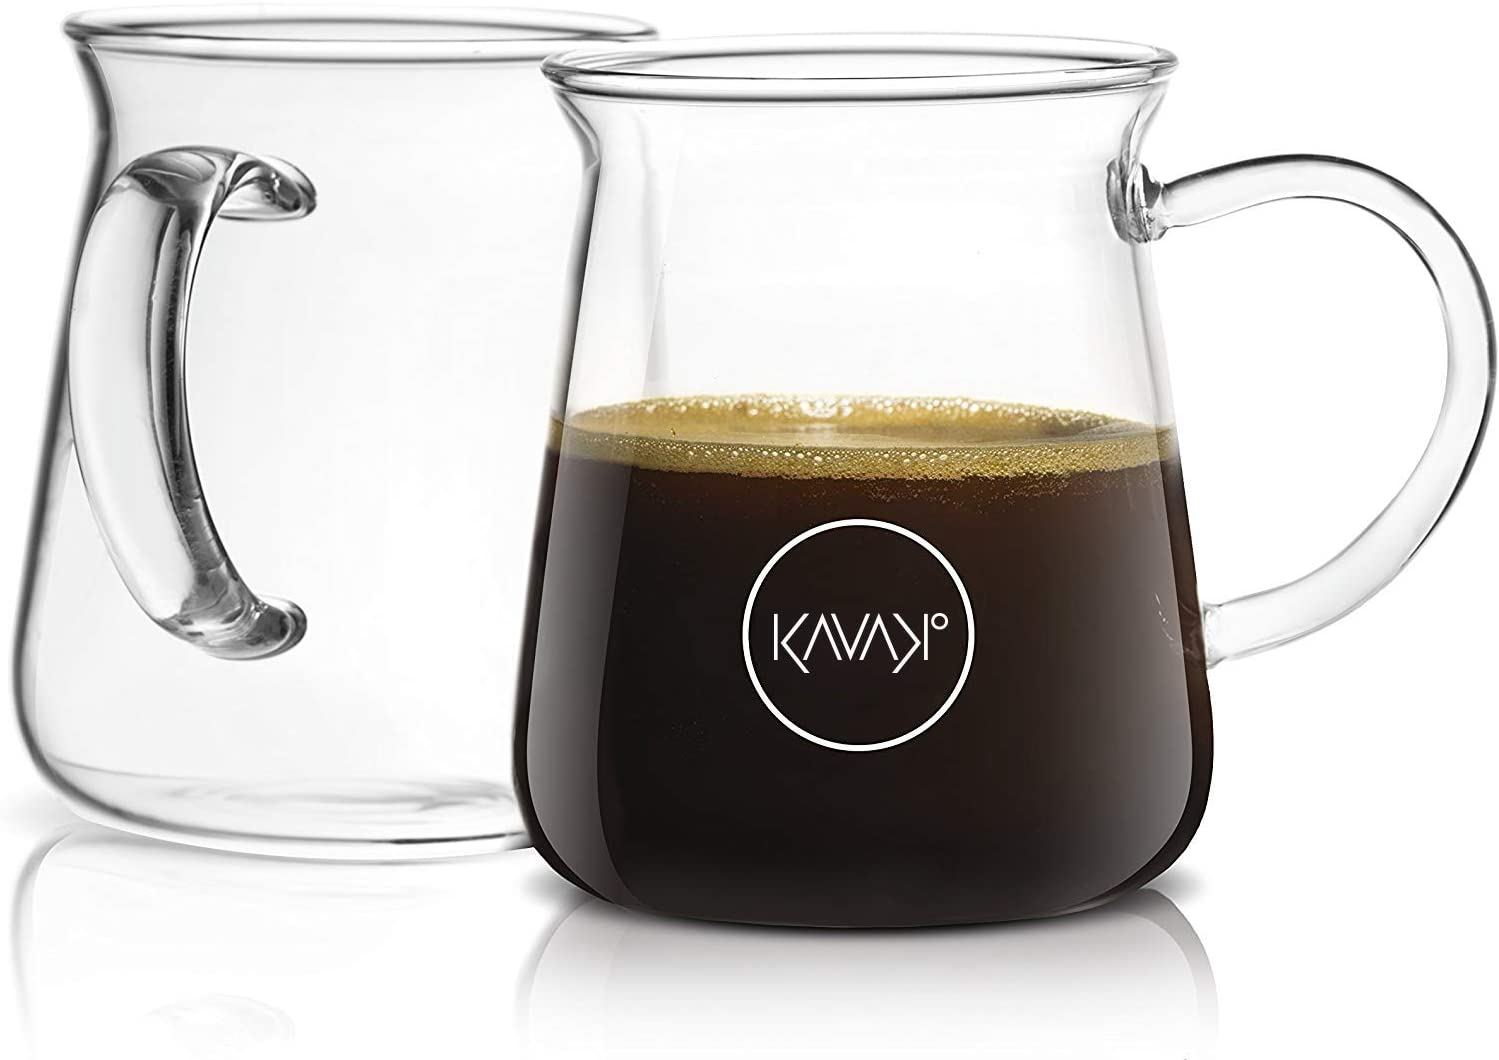 Kavako Borosilicate Glass Coffee Mug – Thermal Shock Proof, Condensation-Free and Specially Designed Rim for Comfort, Set of Two Coffee Mugs – 10 oz. Each